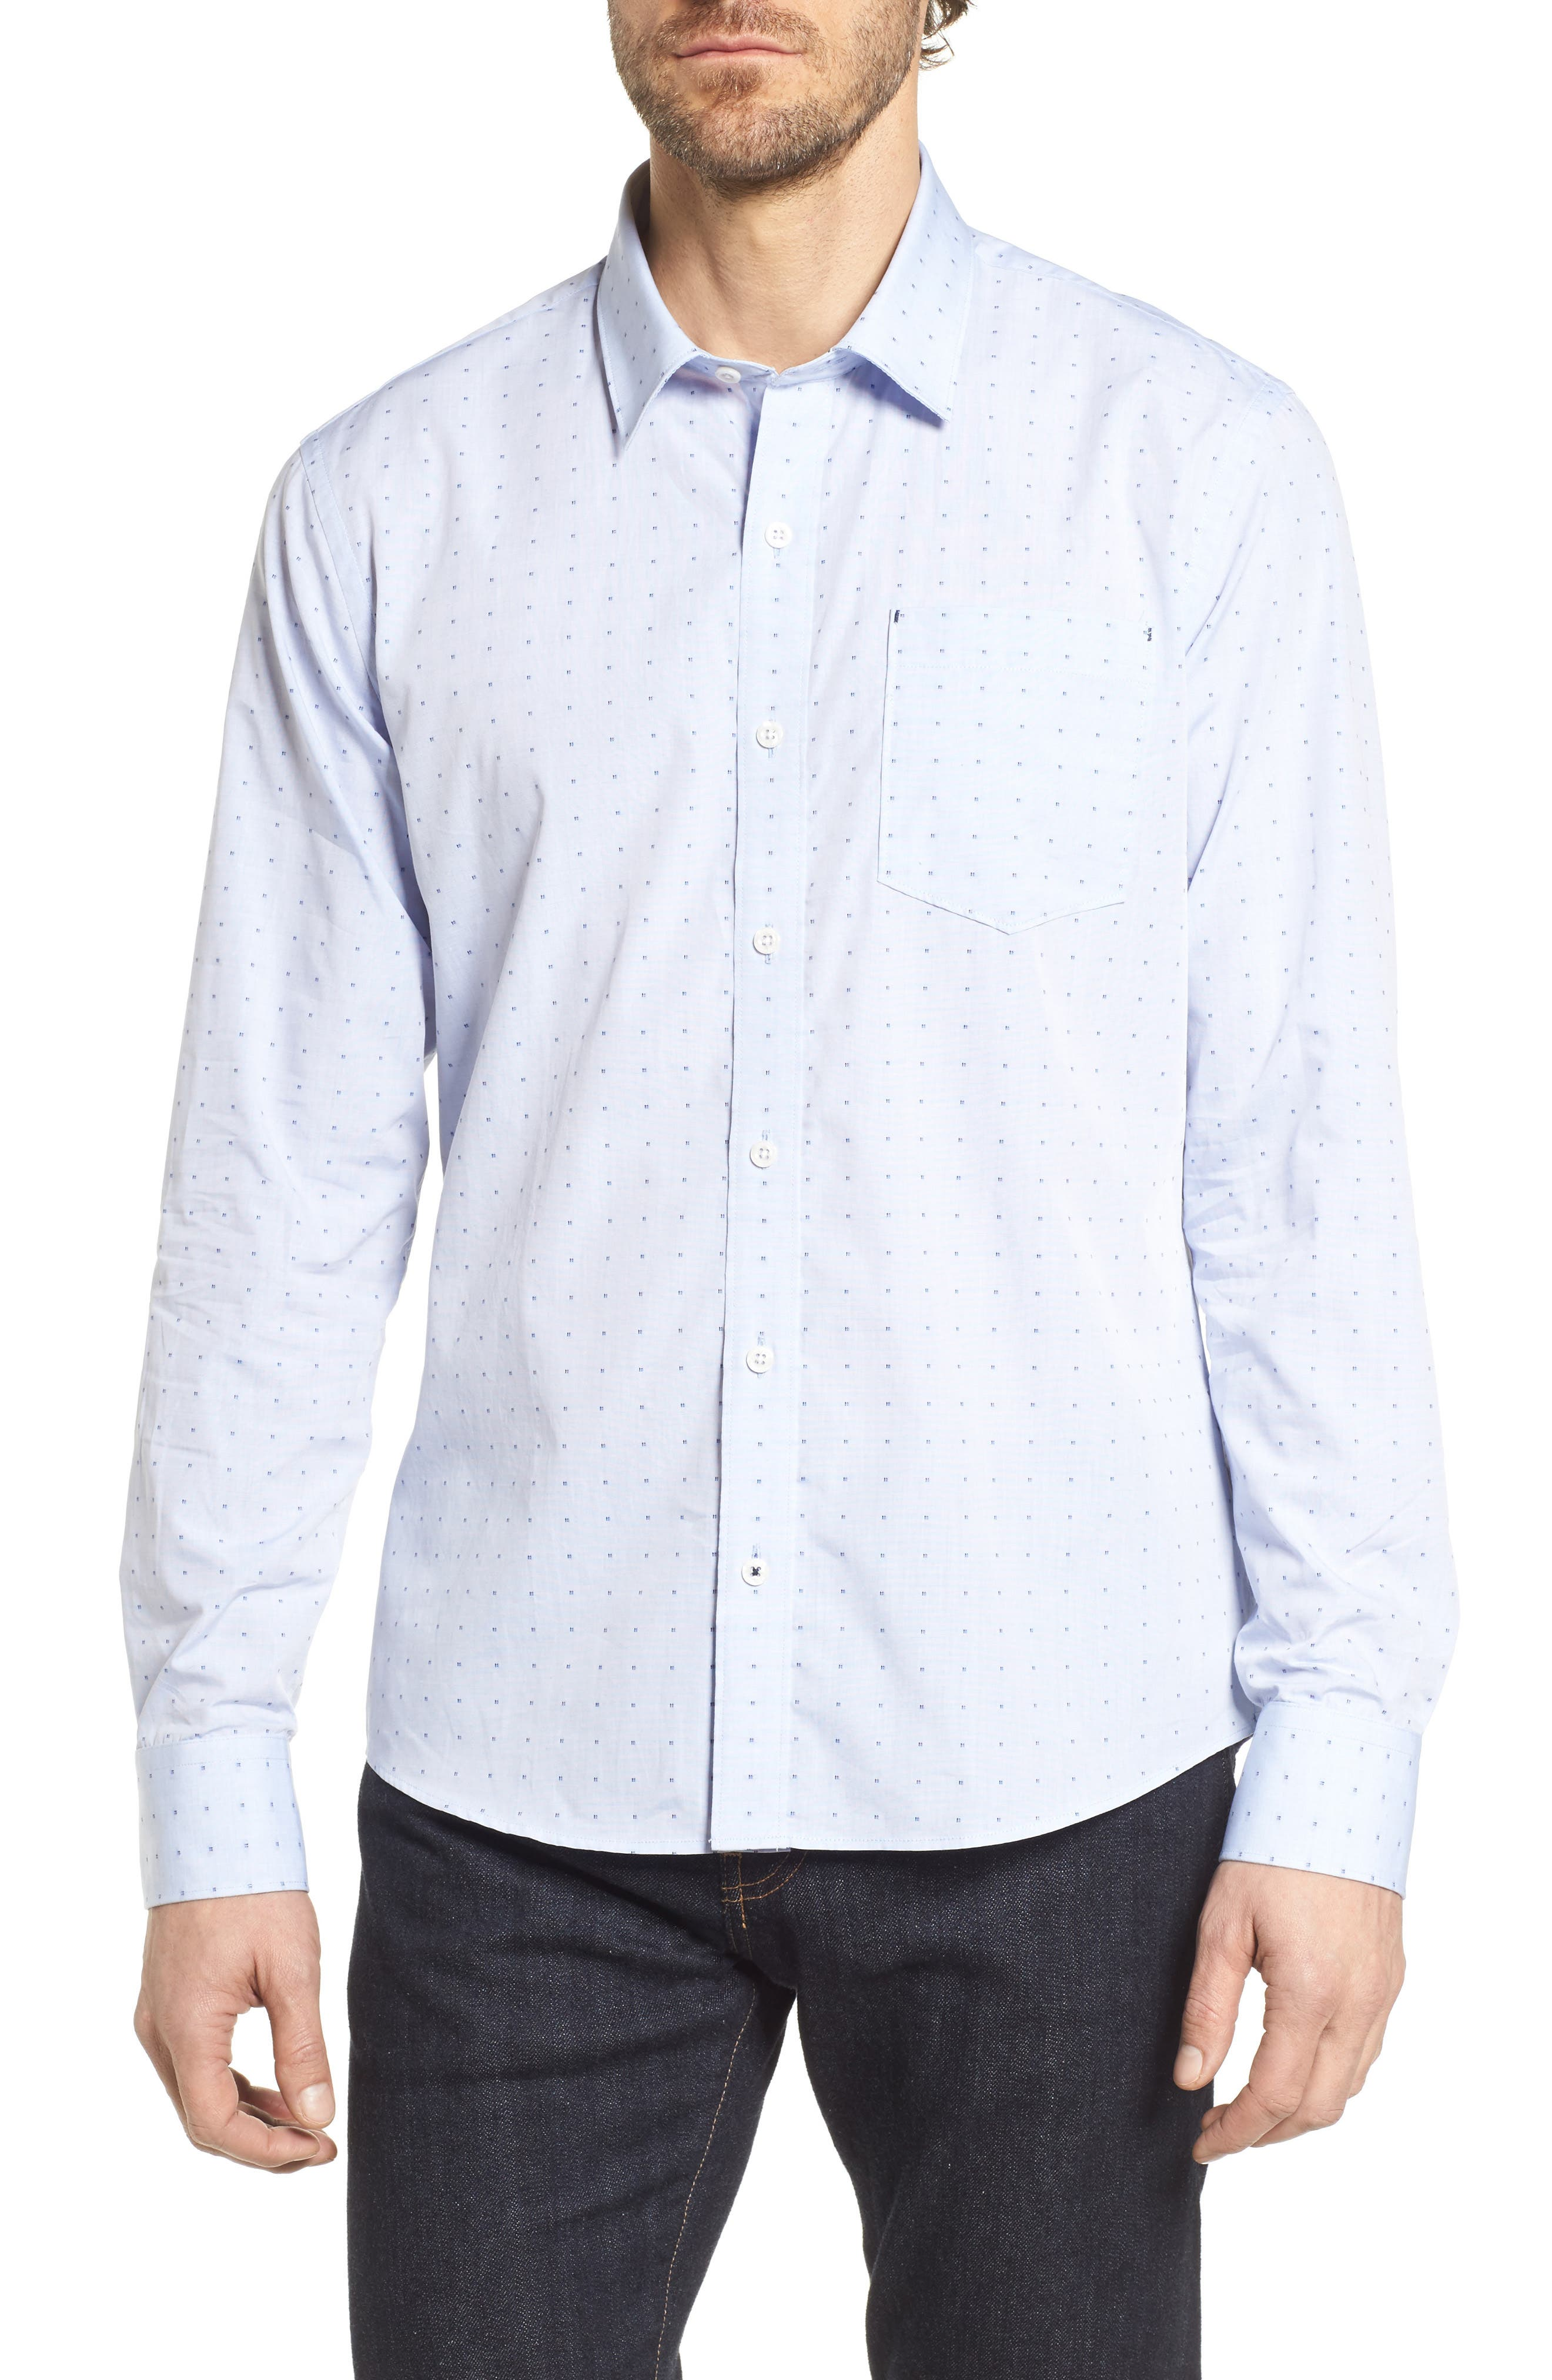 Trust in Me Woven Shirt,                             Main thumbnail 1, color,